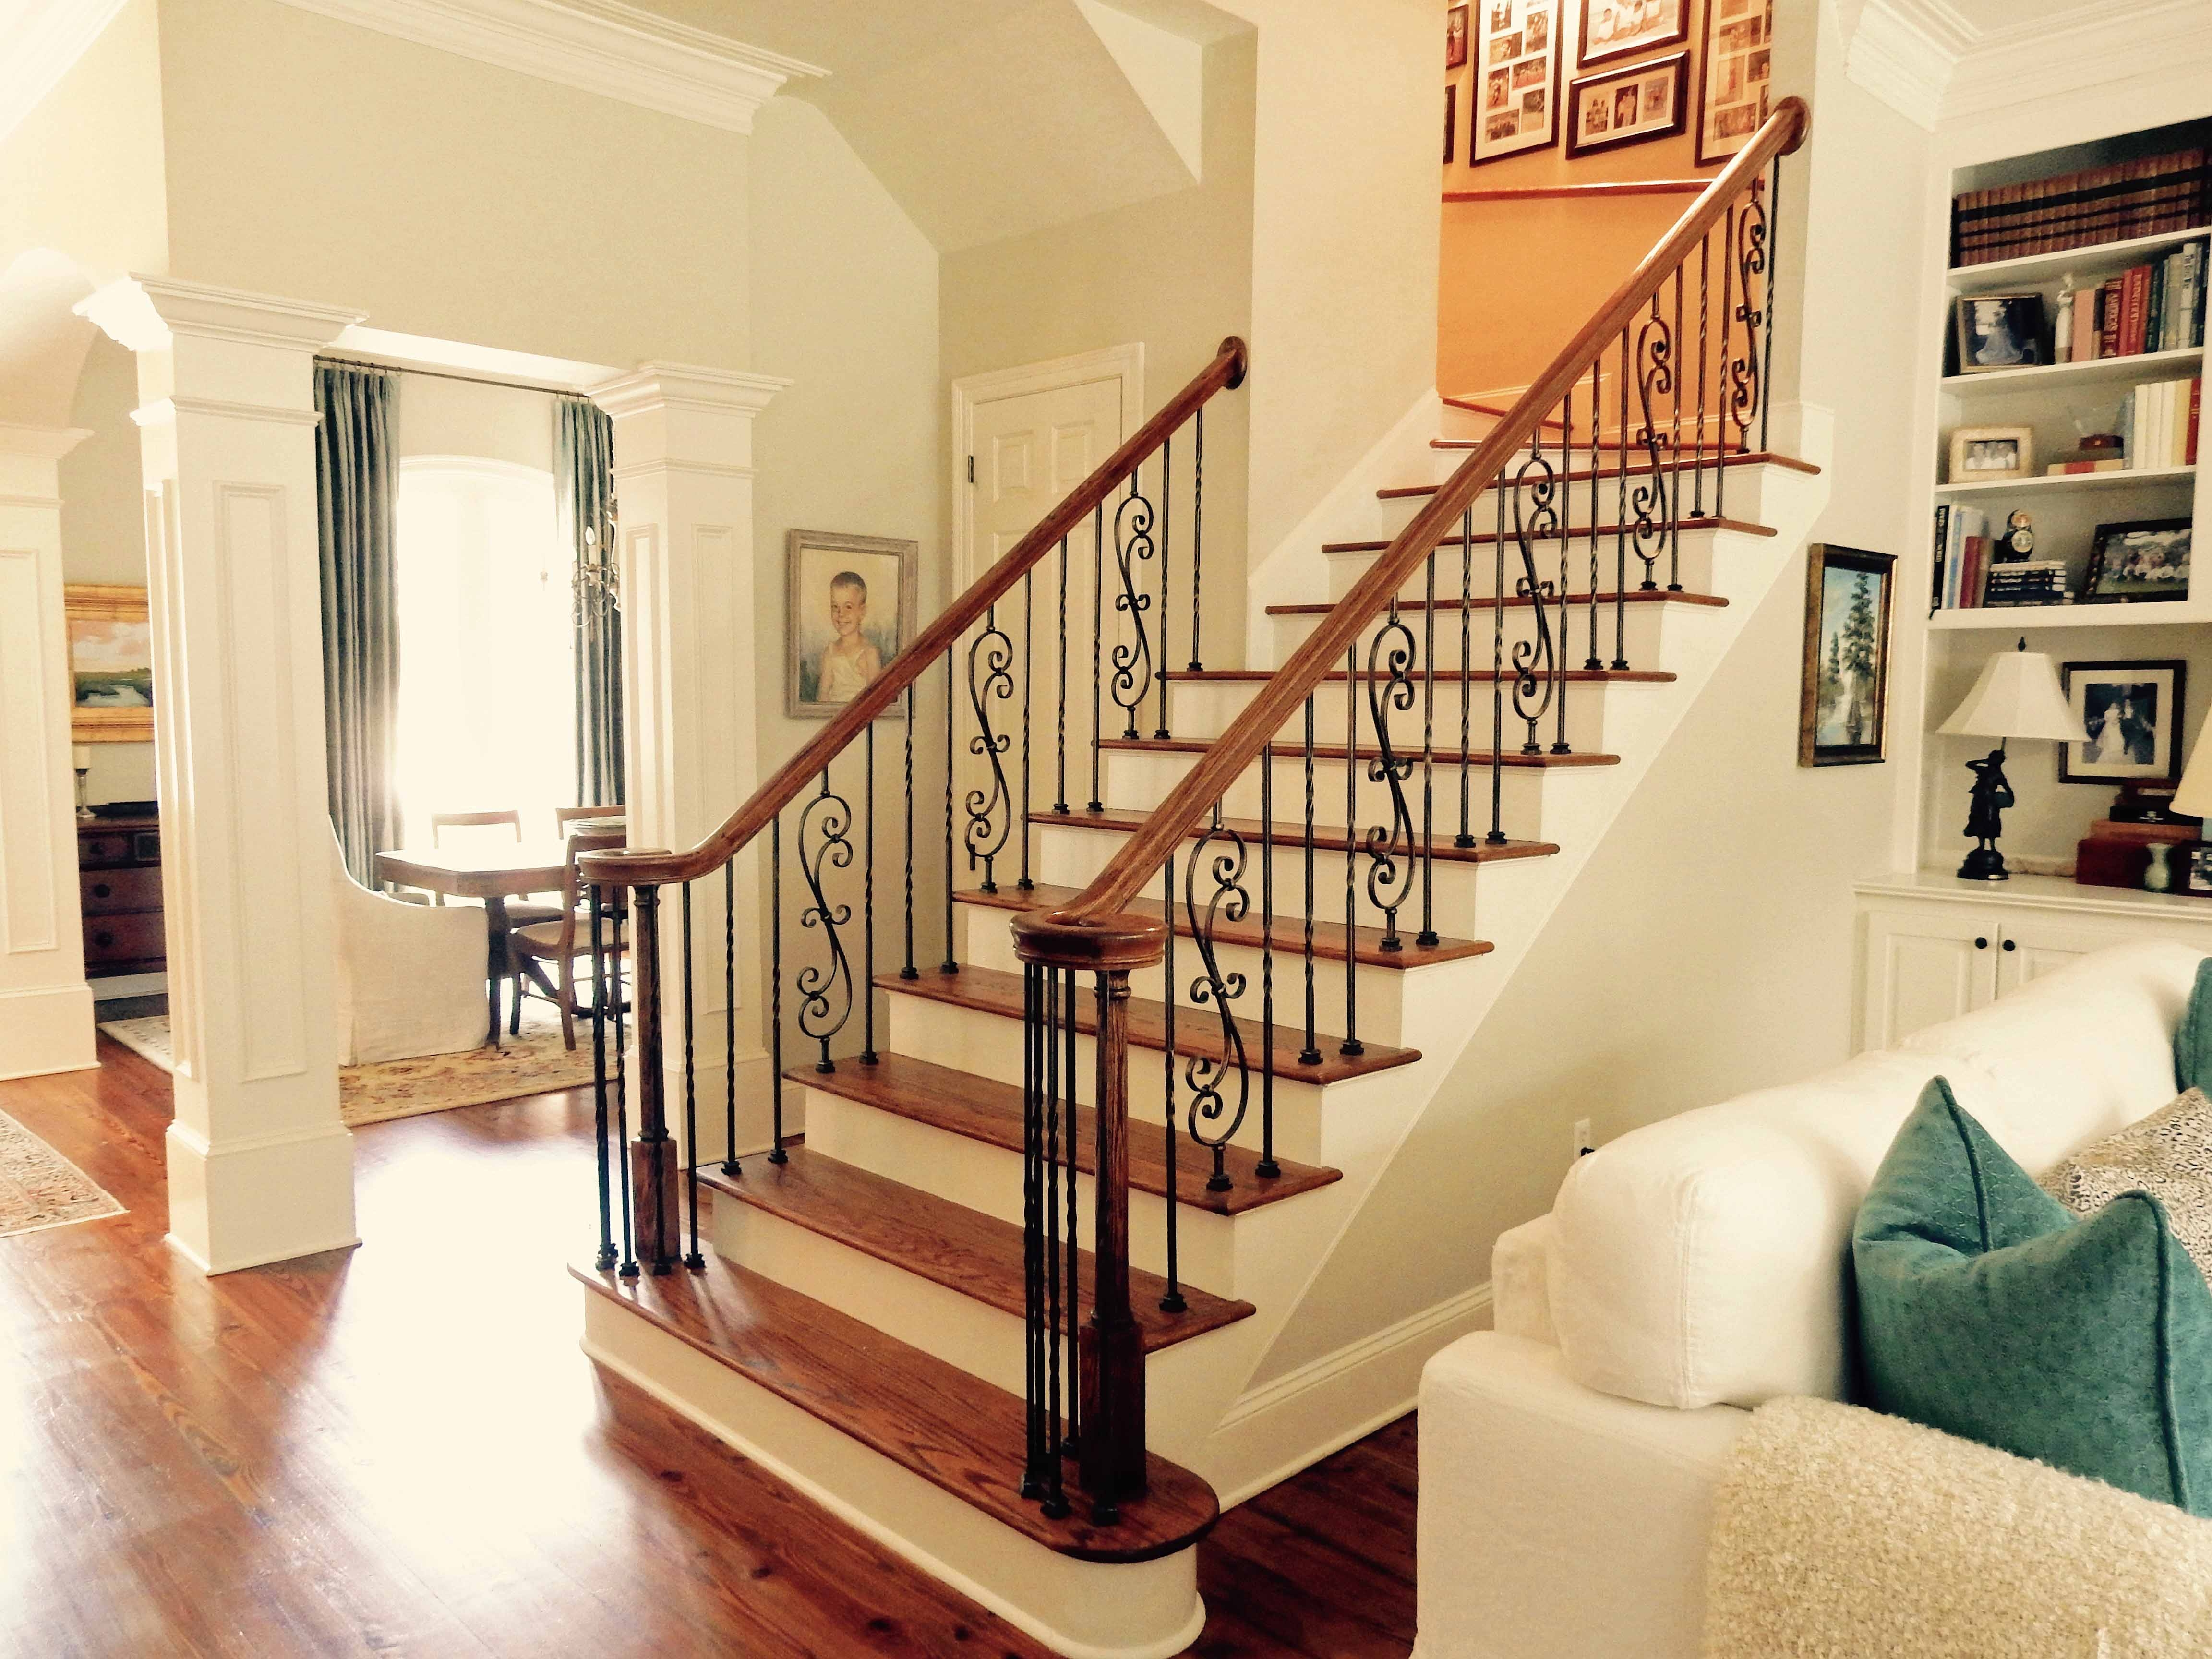 Purchasing New Iron Balusters 6 Essential Steps | Wood Handrail With Iron Balusters | Ash Gray | Ole Iron | Upstairs | Wrought Iron | Low Profile